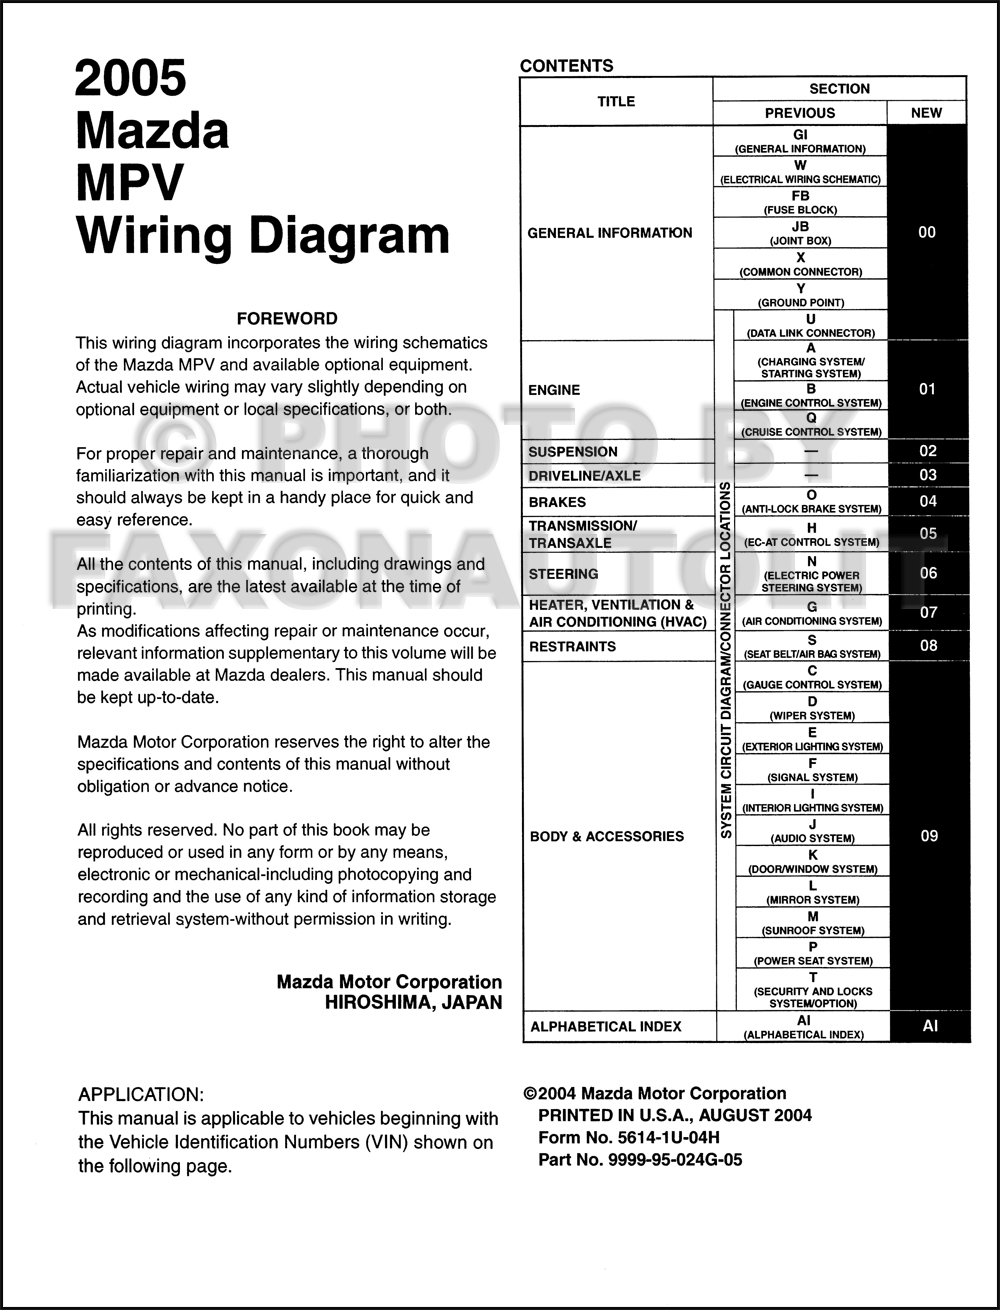 2003 Mazda Mpv Wiring Diagram Pictures 2005 Maserati Schematics Diagrams U2022 Rh Parntesis Co Radio Stereo